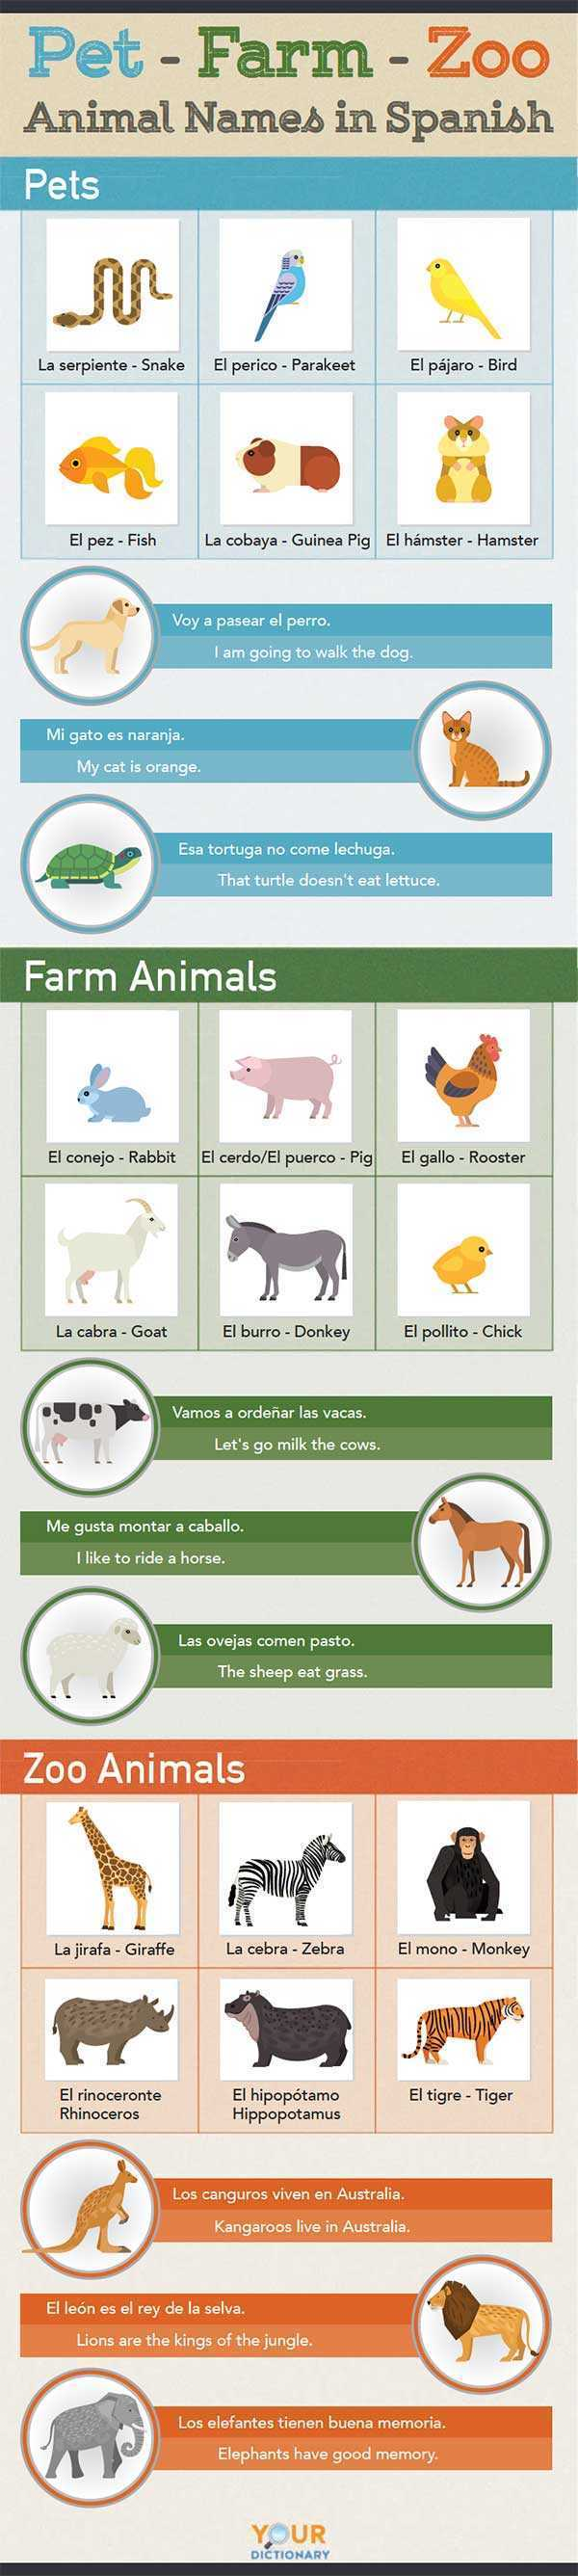 Animal Names in Spanish